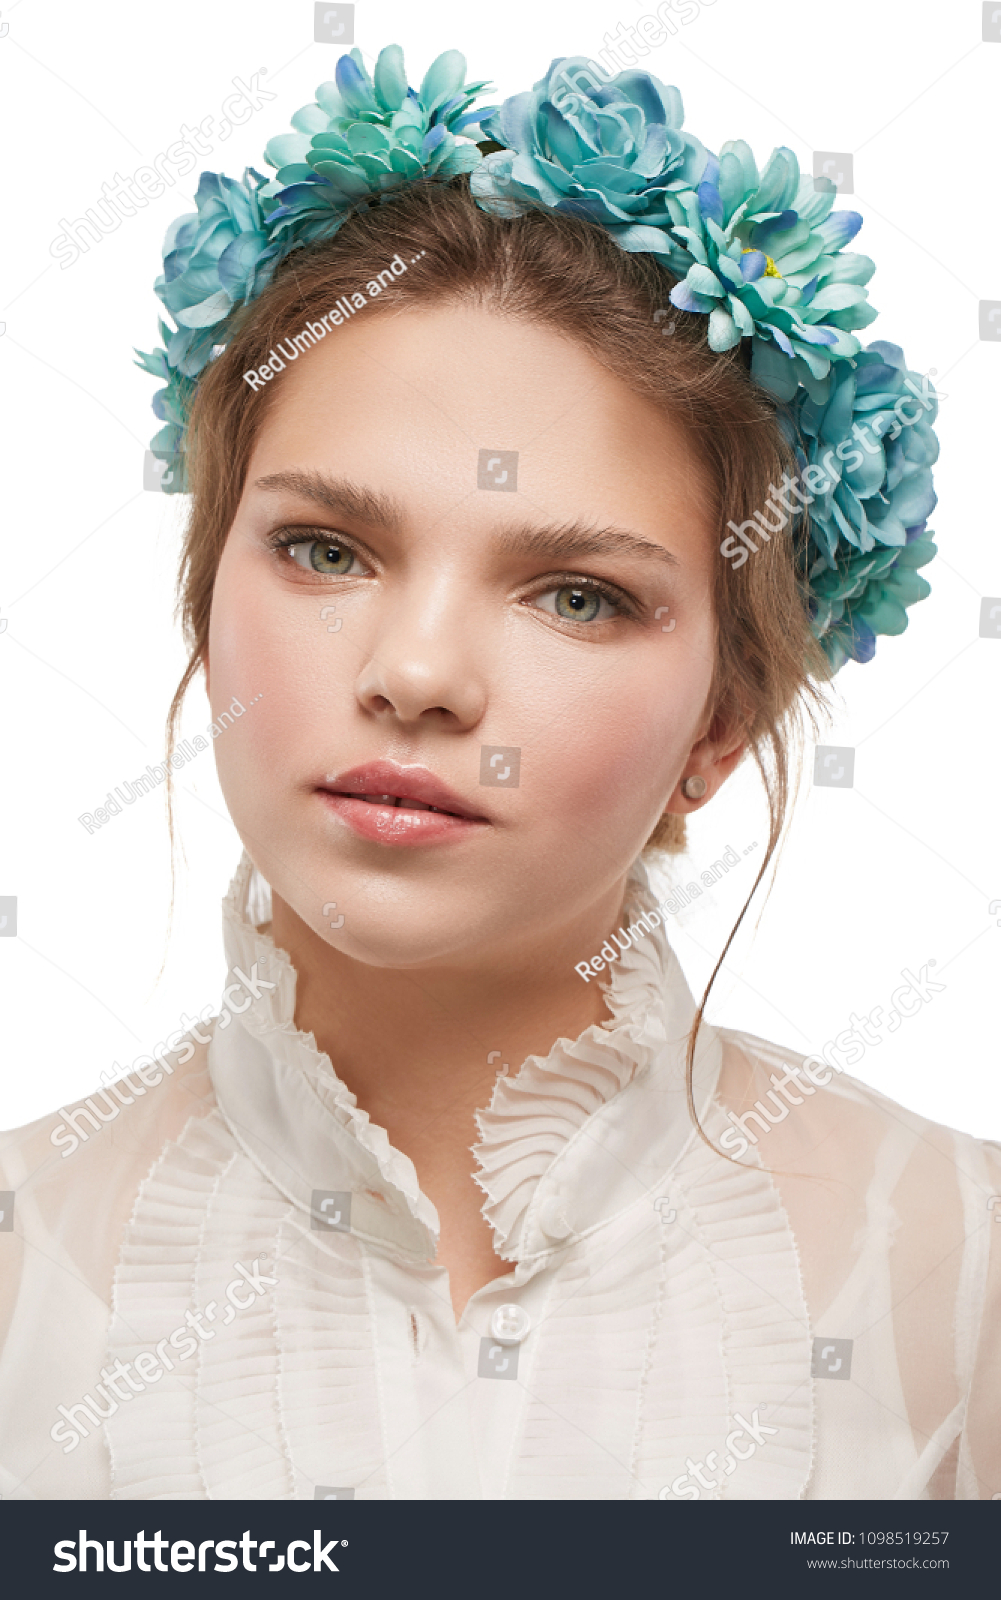 Portrait charming young lady boho flower stock photo edit now portrait of a charming young lady with a boho flower crown in a white blouse izmirmasajfo